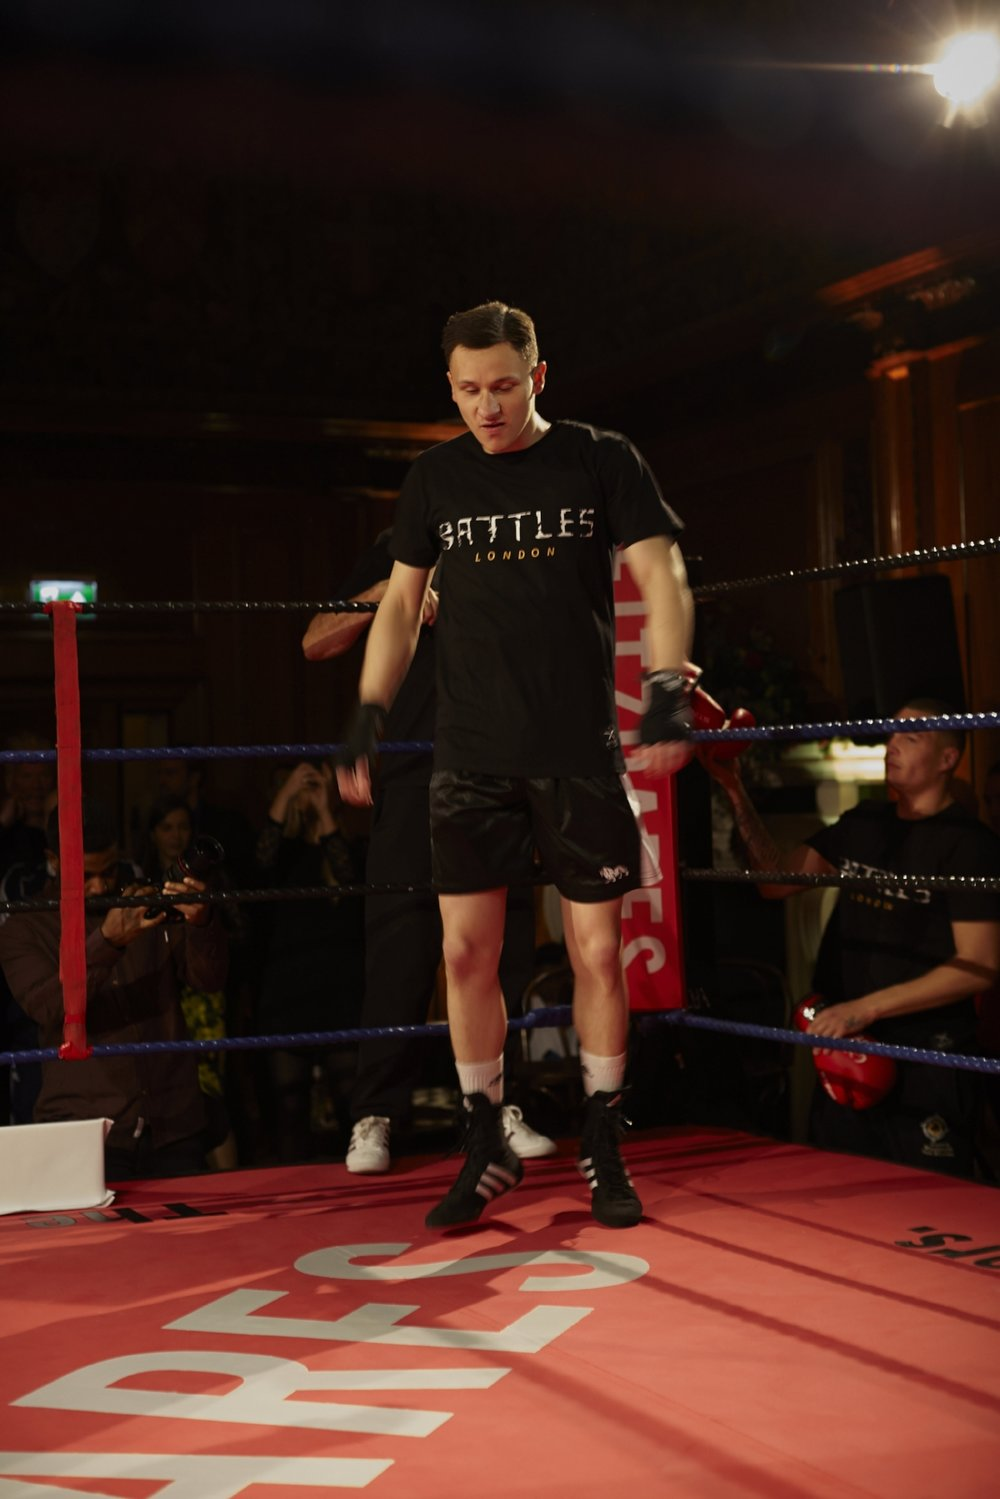 Kumuteo's opponent Charlie Wincott of south London's Lynn Boxing enters the ring